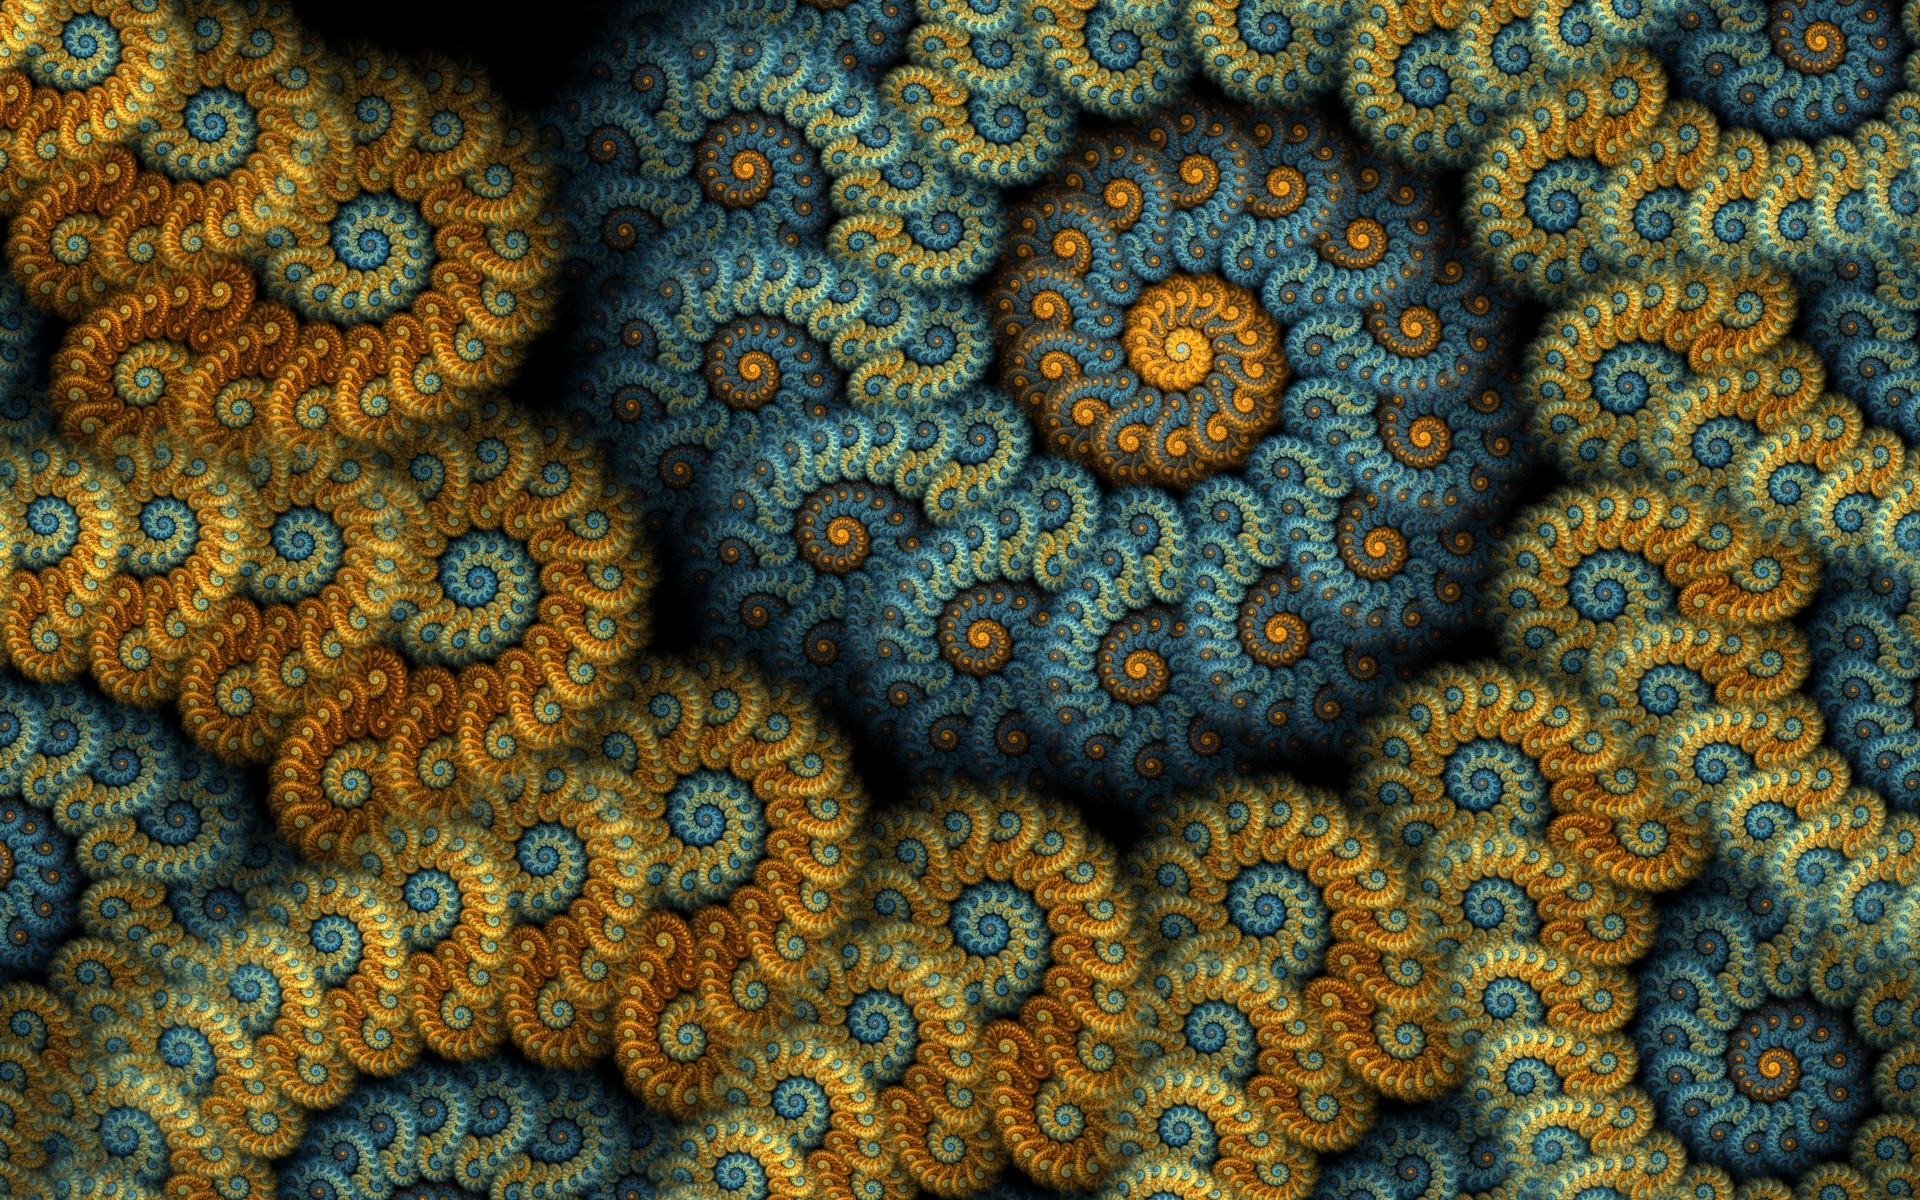 an overview of fractals The history of fractals dates back to 1975, when fractals were discovered by benoît mandelbrot well, maybe not discovered, but finally put into words he explained them as being geometric shapes that when divided into parts, each part would be a smaller replica of the whole shape.